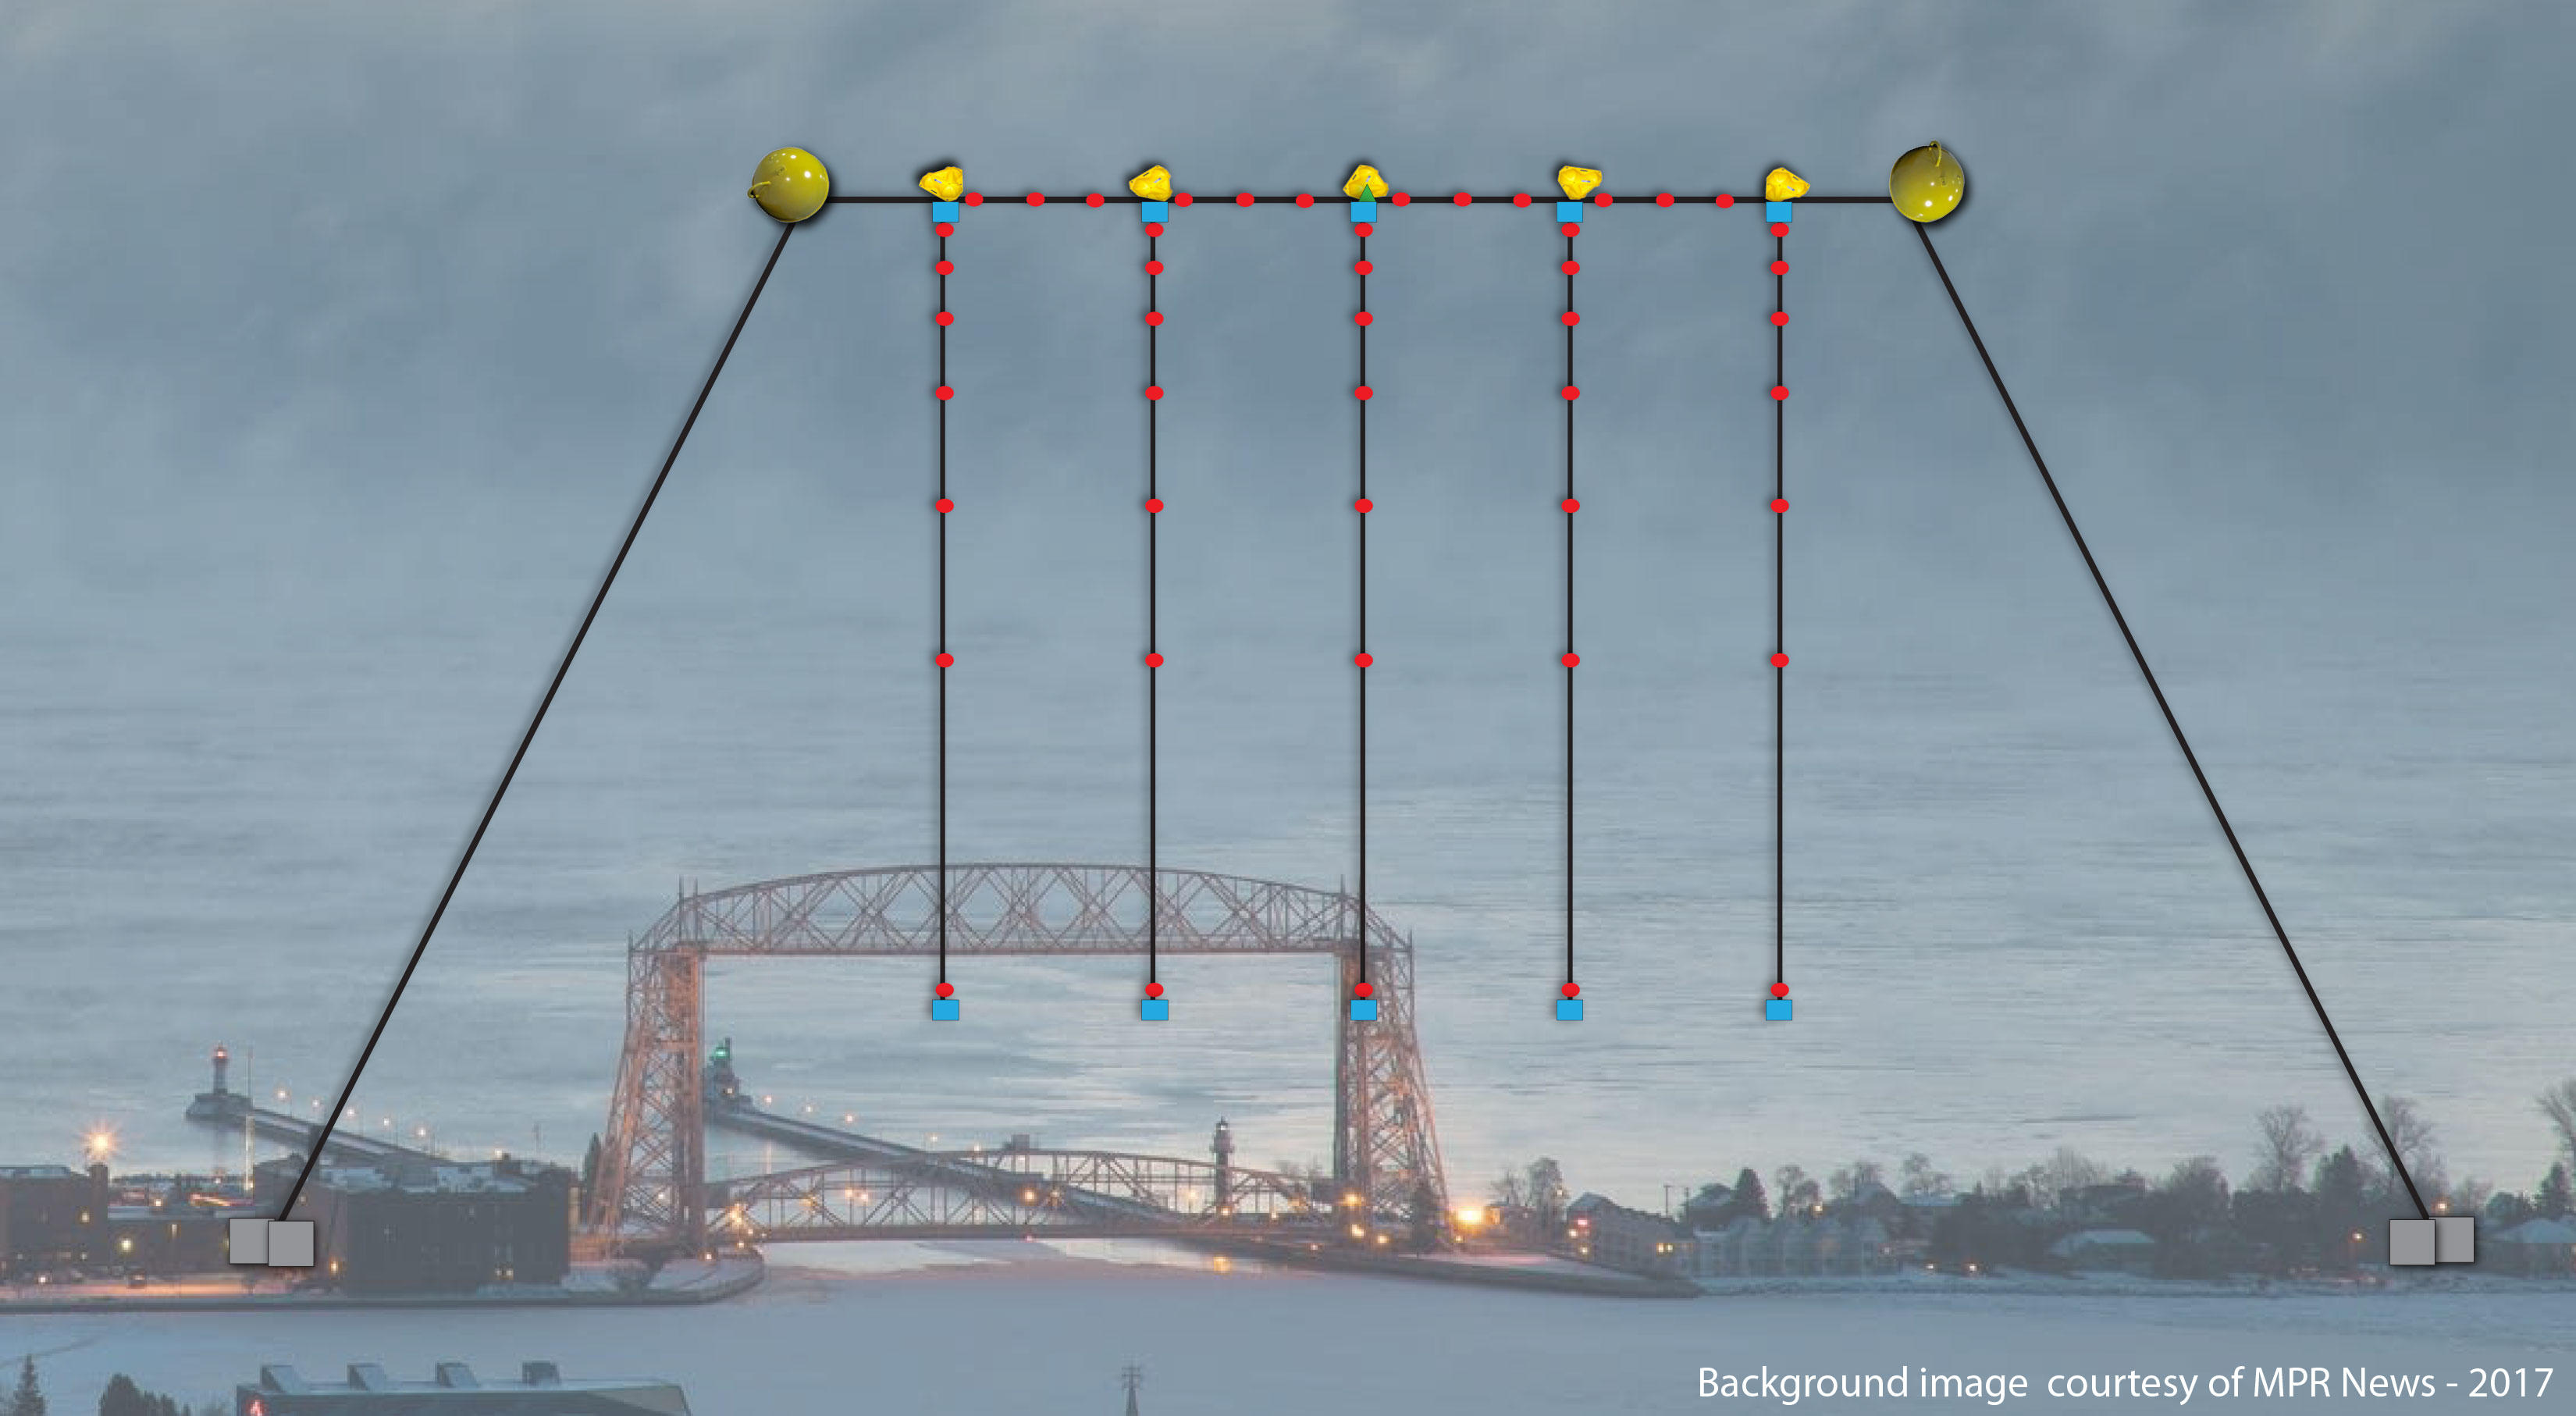 Duluth Minnesota Lift Bridge with Diagram of vertical cables